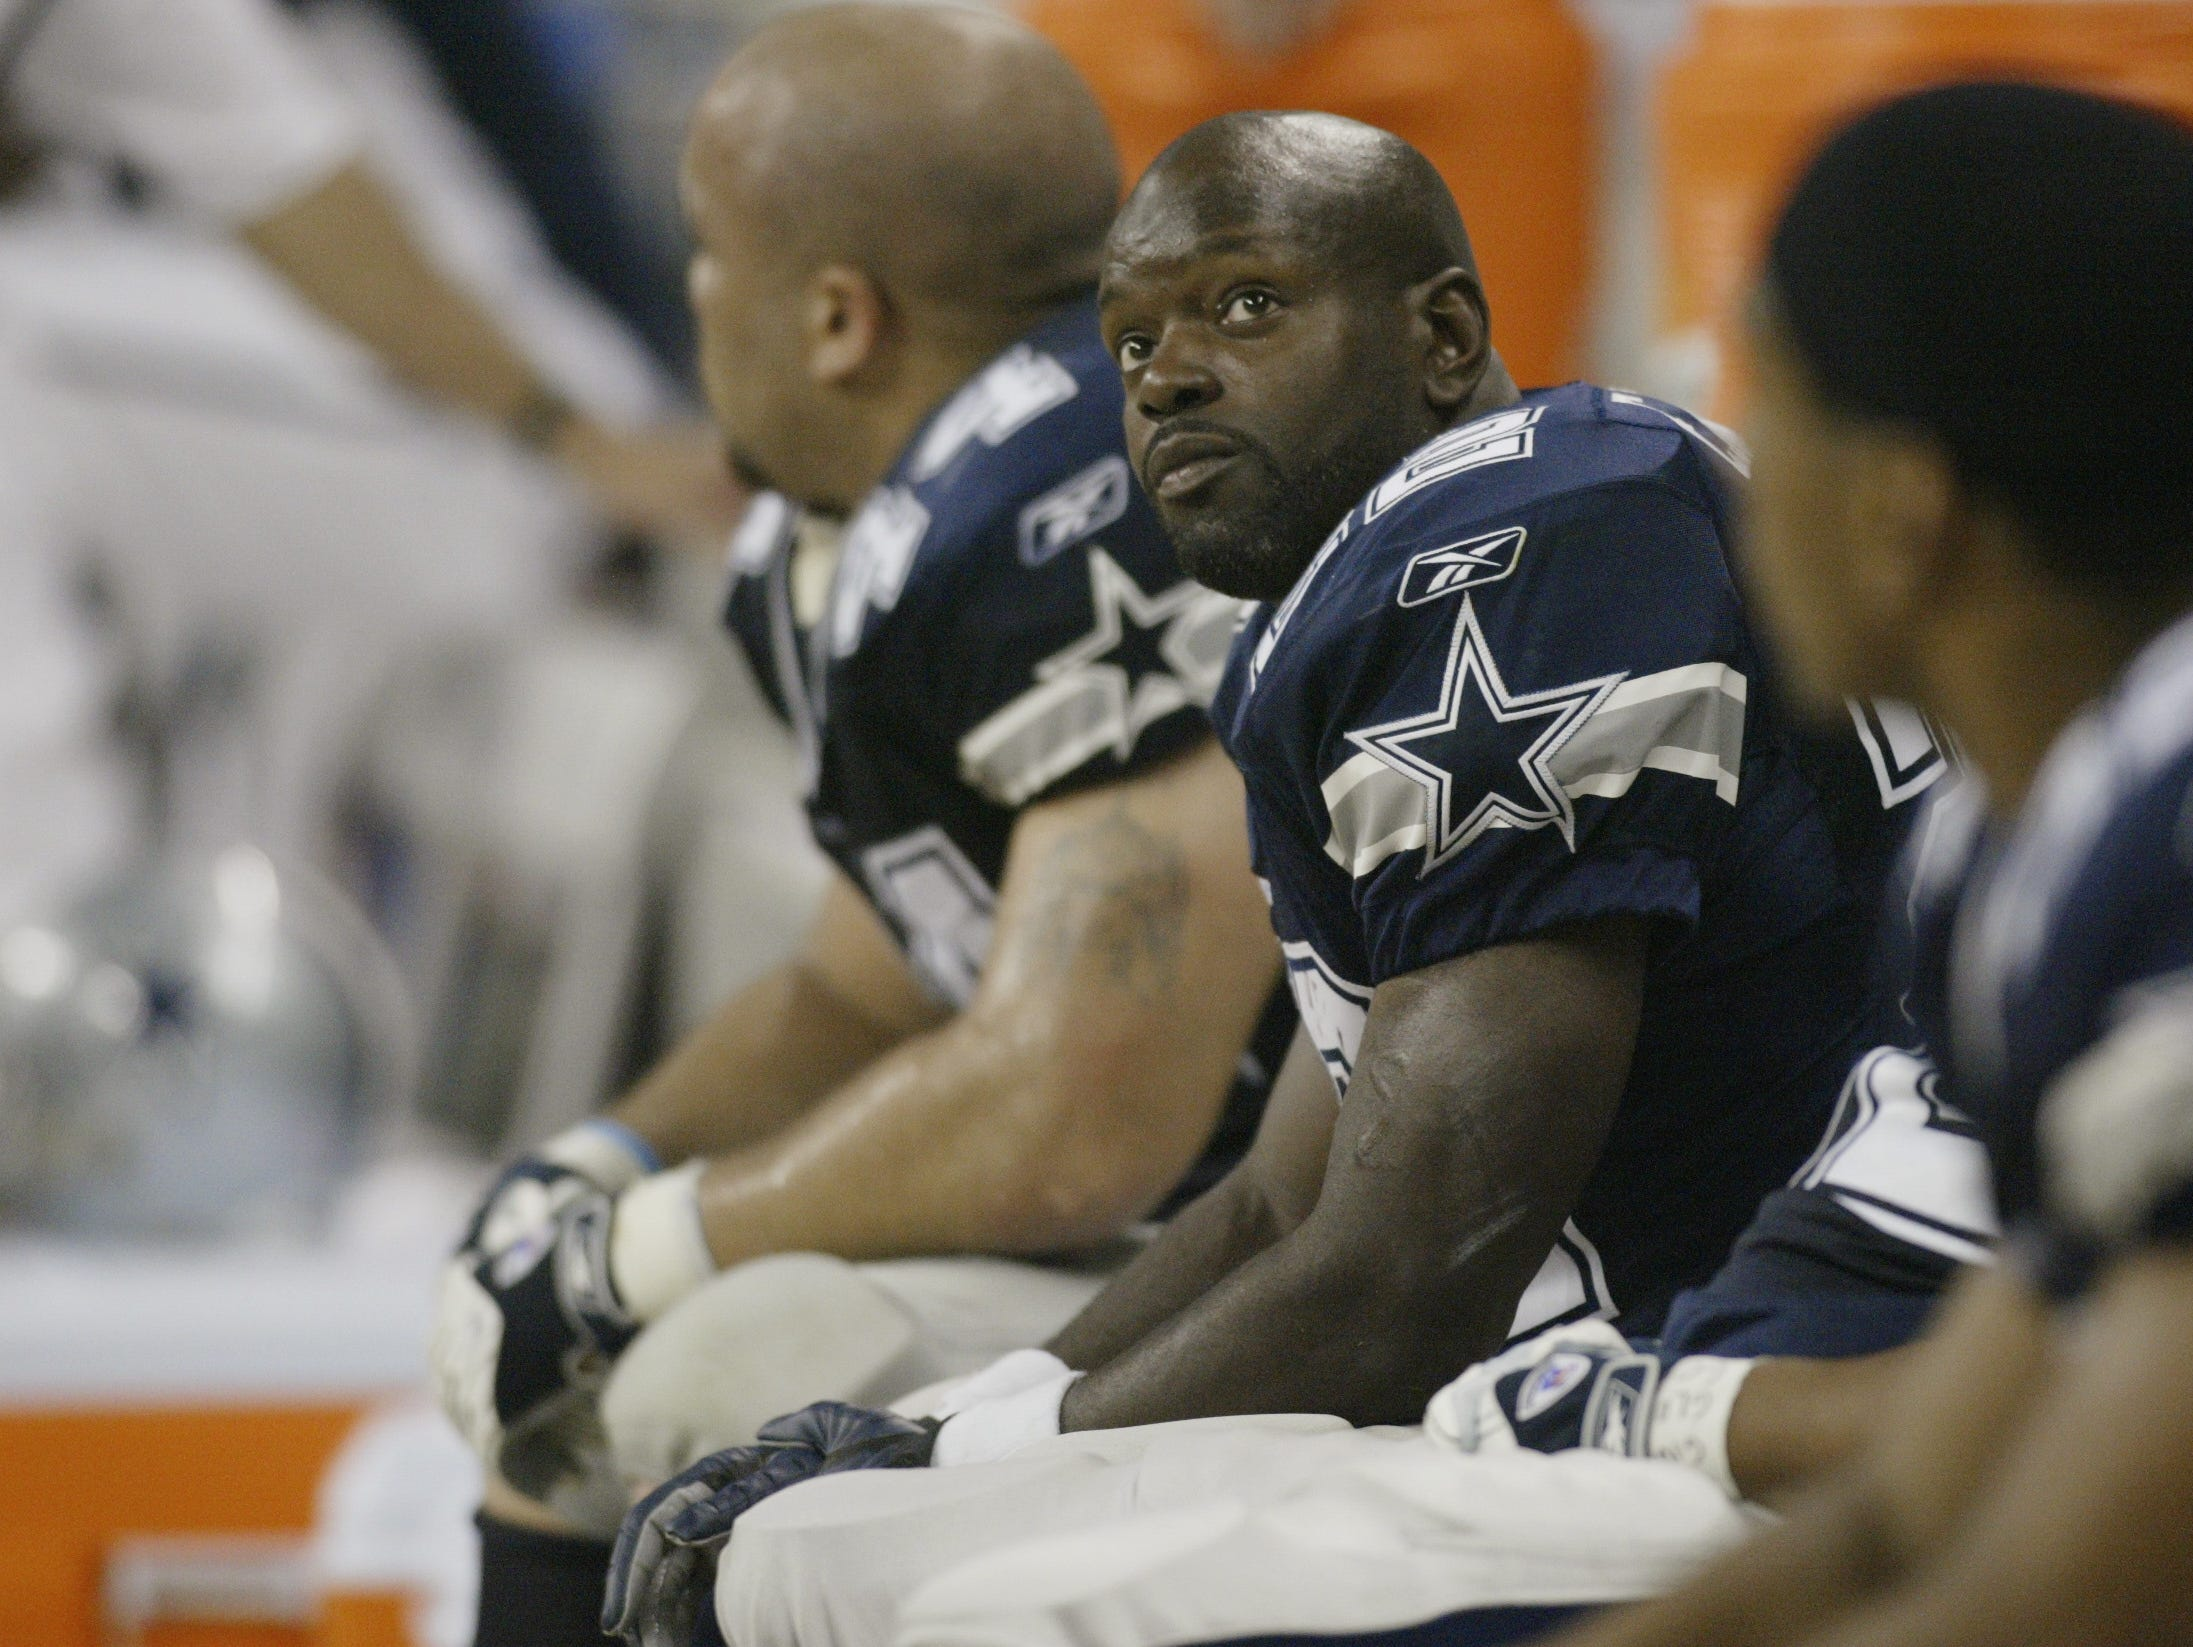 HOUSTON, TX - SEPTEMBER 8:  Running back Emmitt Smith #22 of the Dallas Cowboys sits on the bench and looks at the scoreboard during NFL game against the Houston Texans on September 8, 2002 at Reliant Stadium in Houston, Texas. The Texans won their first regular season game 19-10.  (Photo by Ronald Martinez/Getty Images)